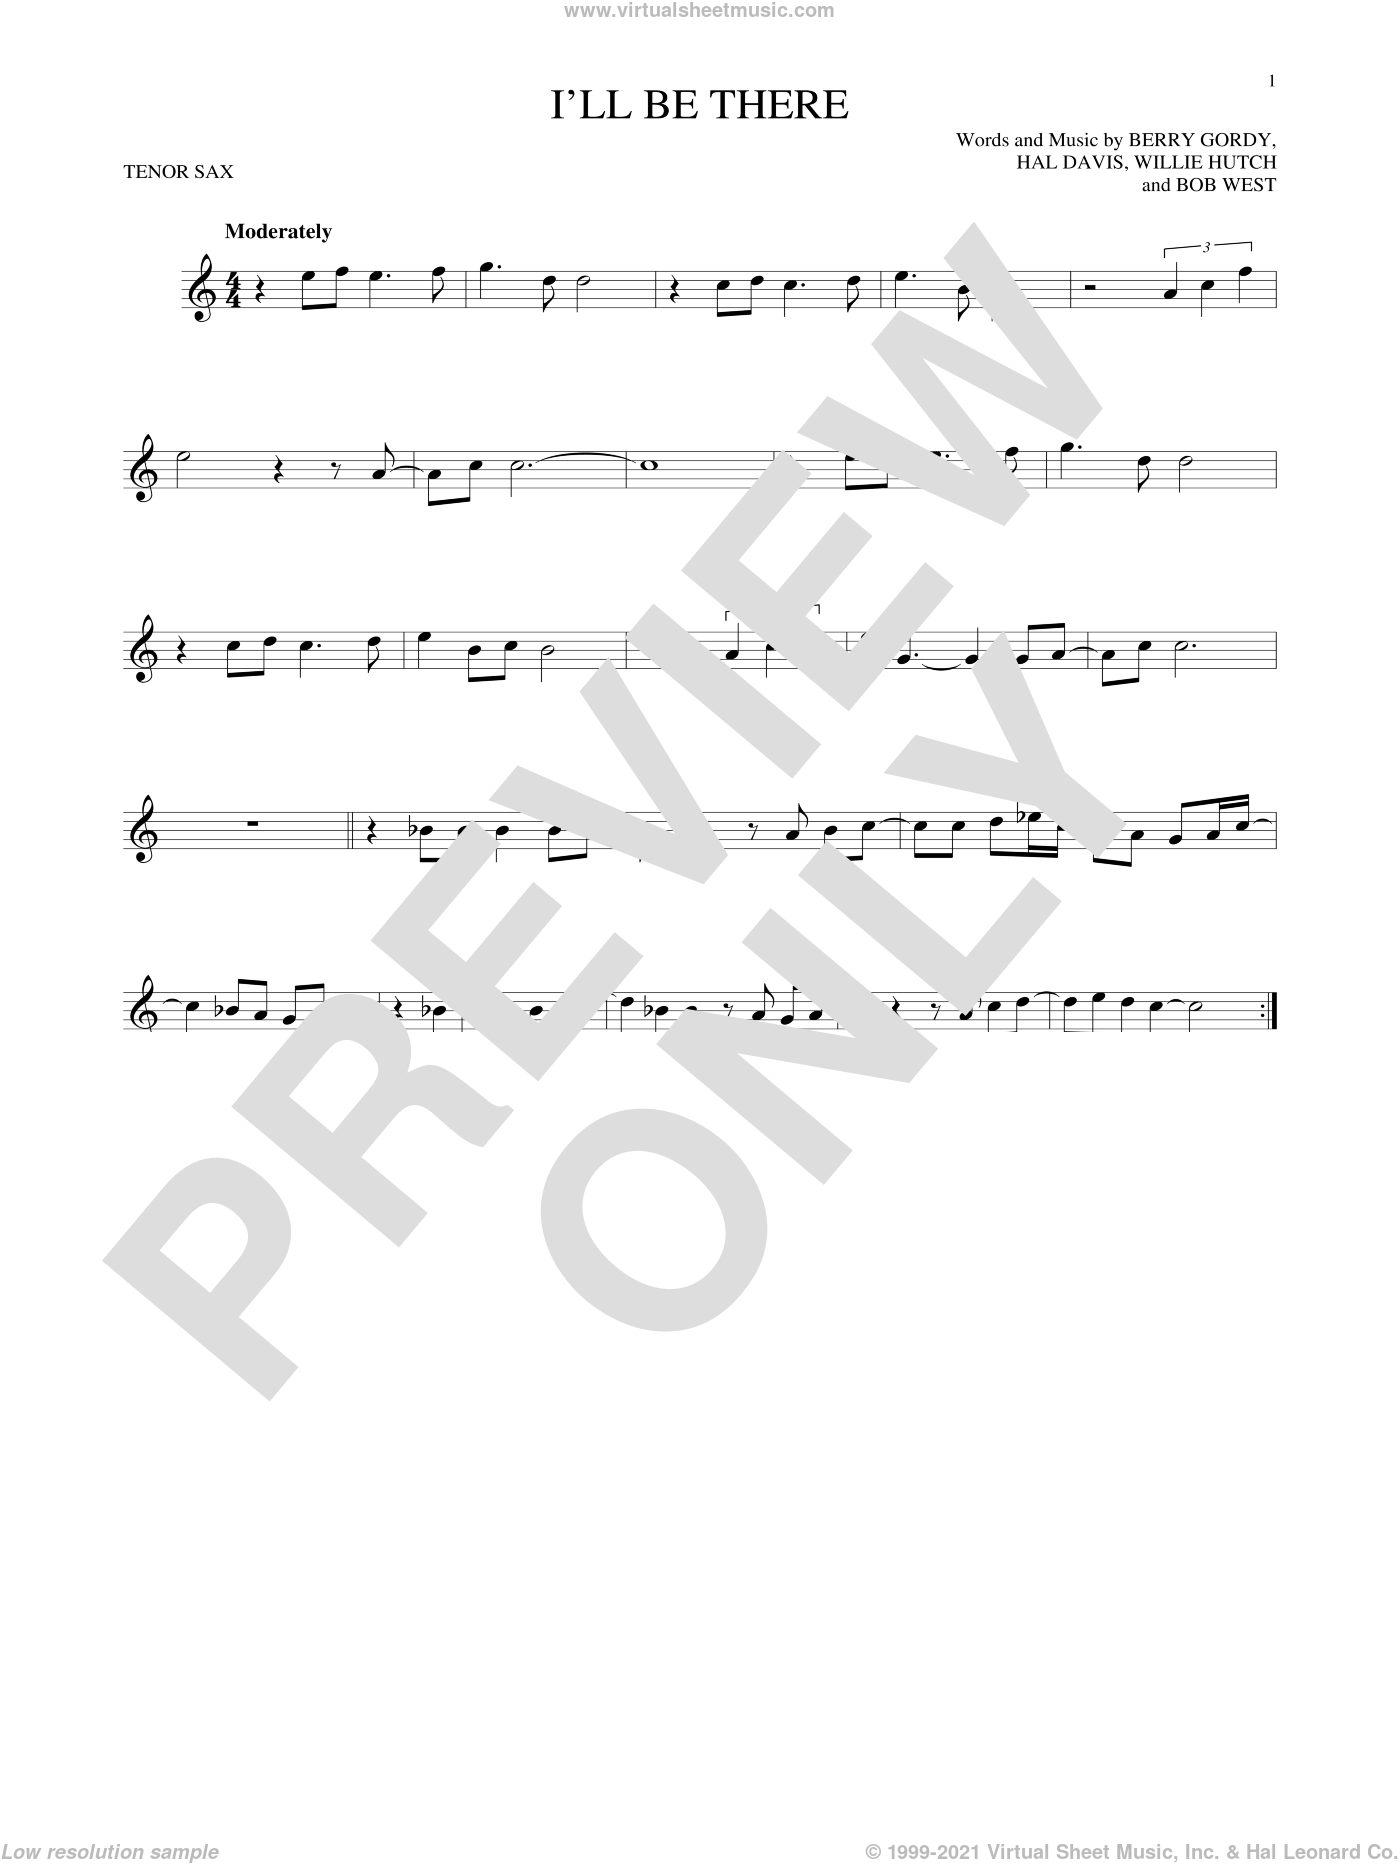 I'll Be There sheet music for tenor saxophone solo by The Jackson 5, Berry Gordy Jr., Bob West and Hal Davis, intermediate skill level